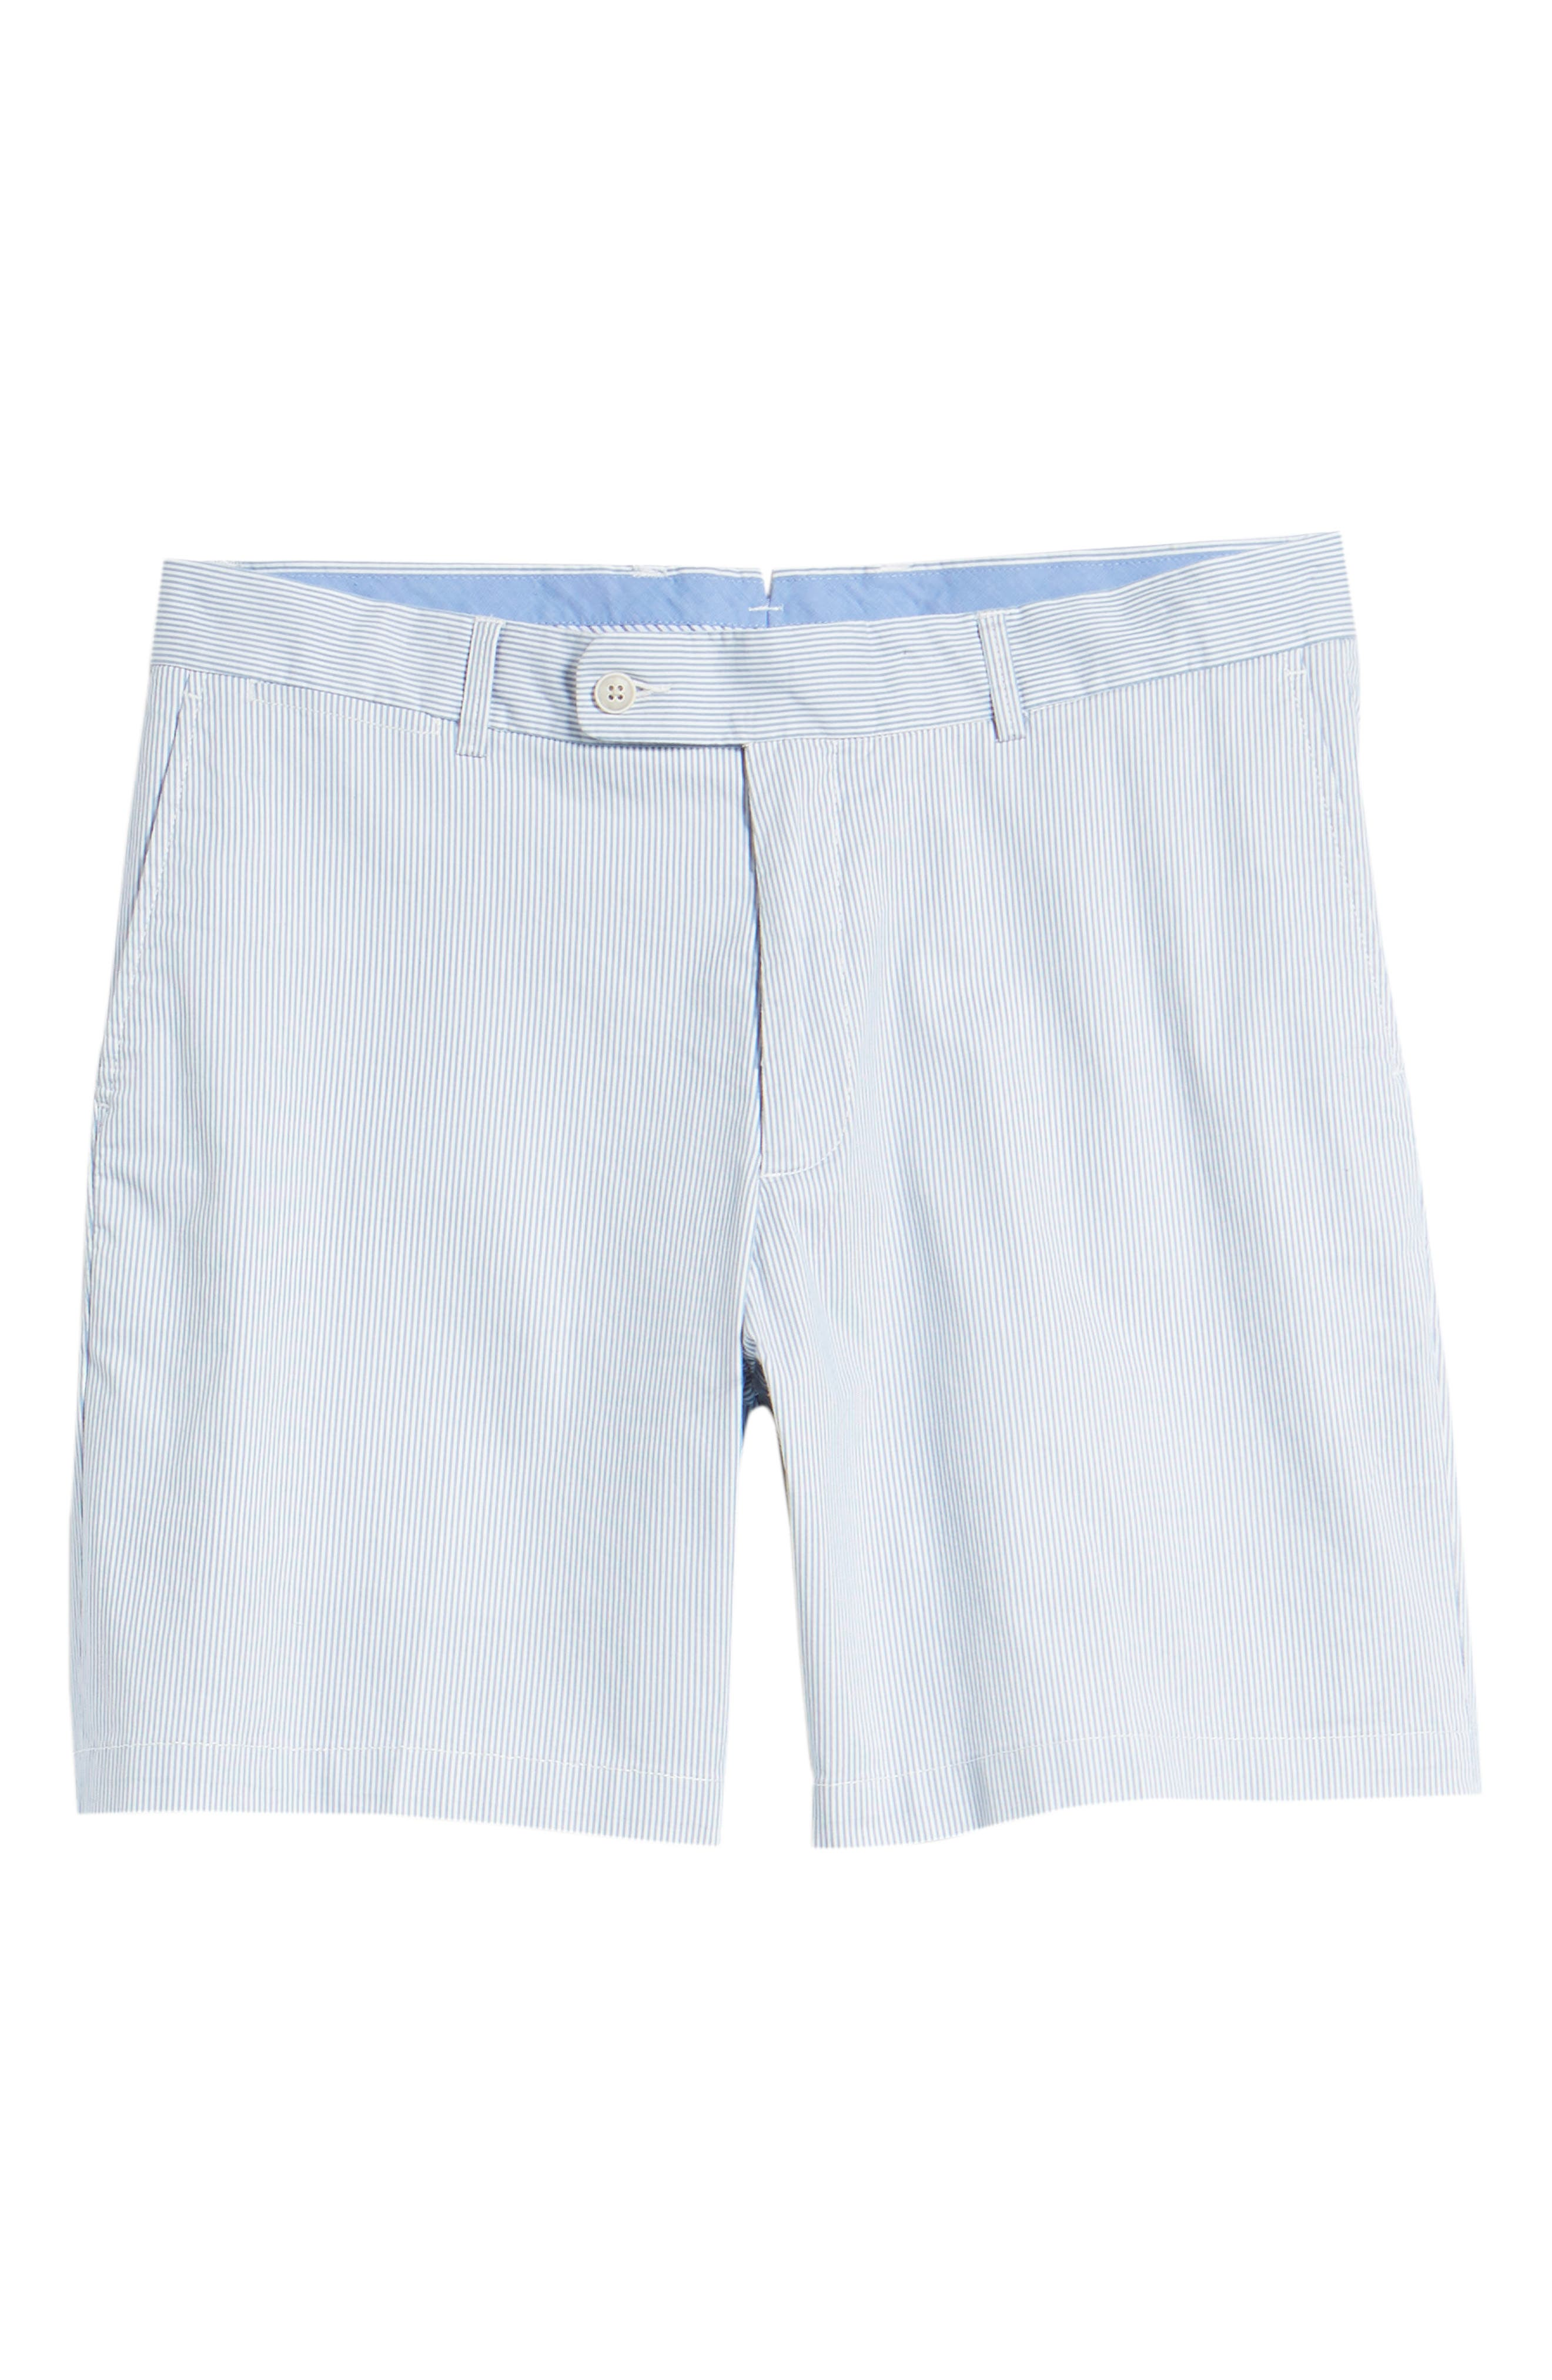 Summer Pinstripe Flat Front Shorts,                             Alternate thumbnail 6, color,                             439